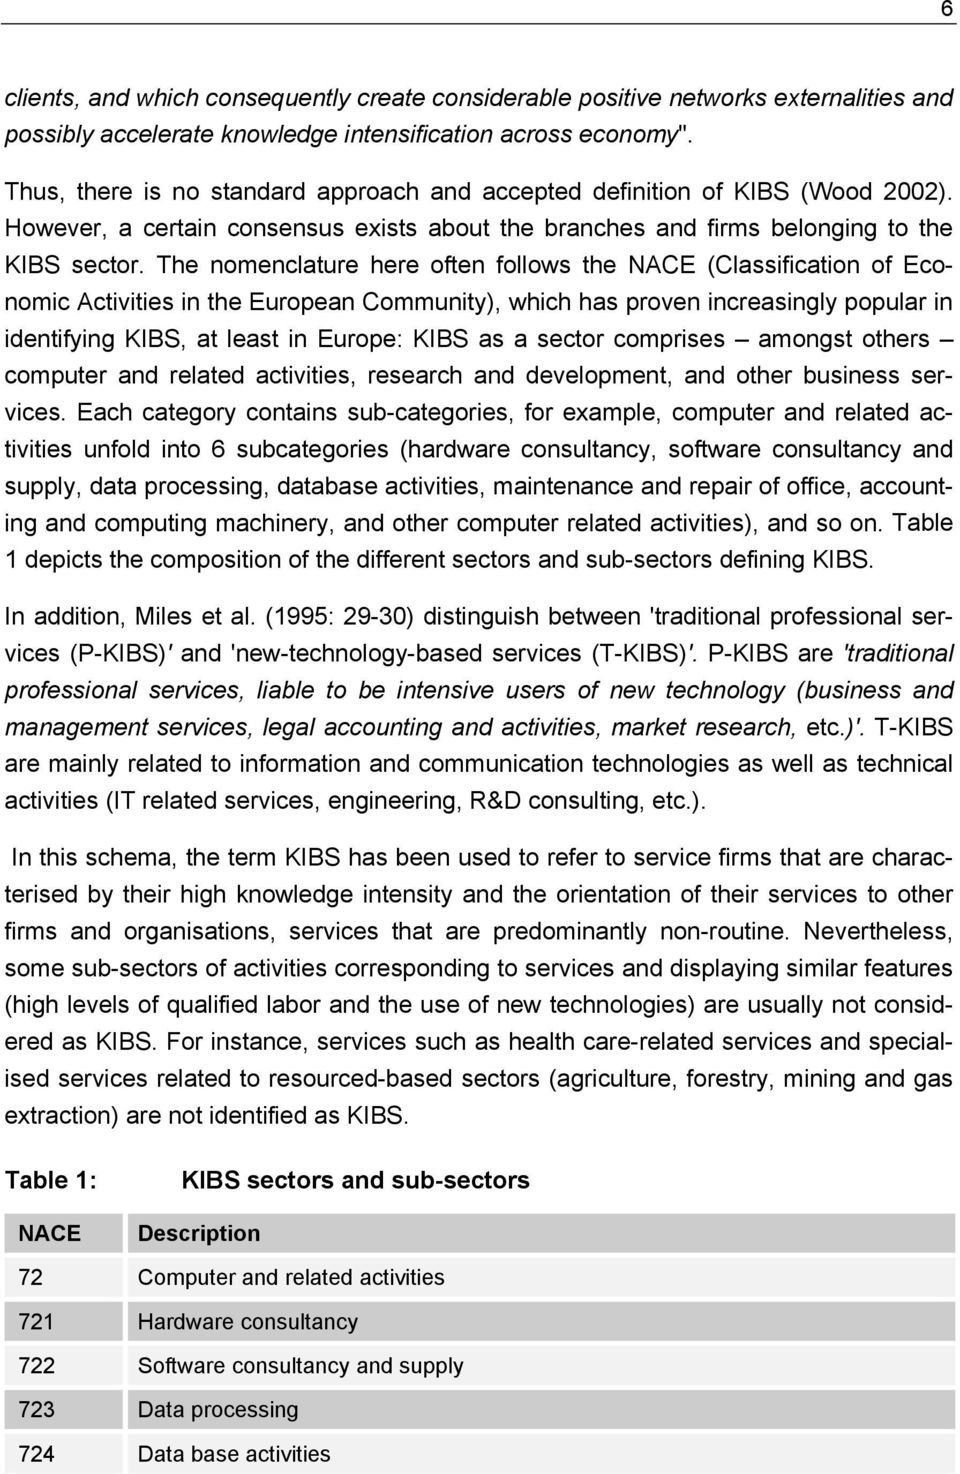 The nomenclature here often follows the NACE (Classification of Economic Activities in the European Community), which has proven increasingly popular in identifying KIBS, at least in Europe: KIBS as